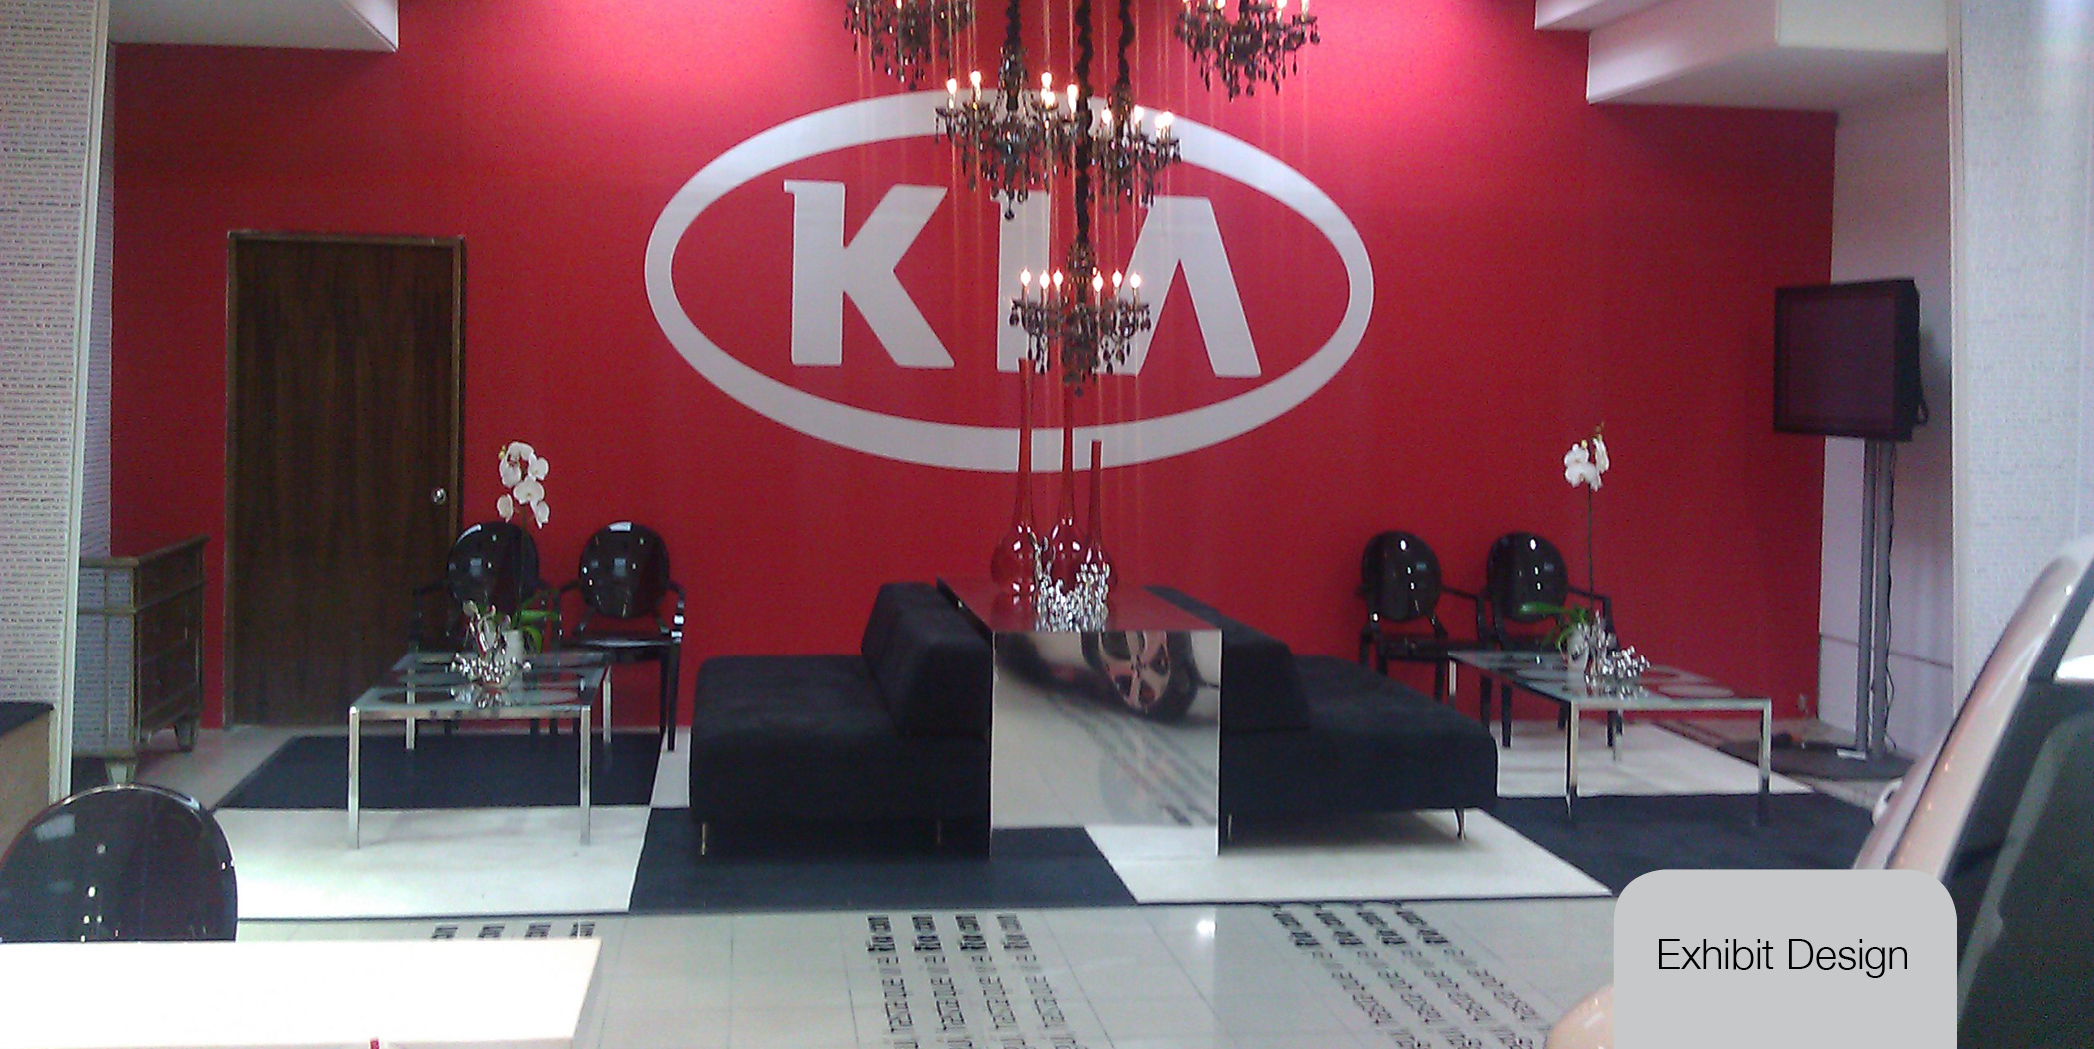 Kia Exhibit